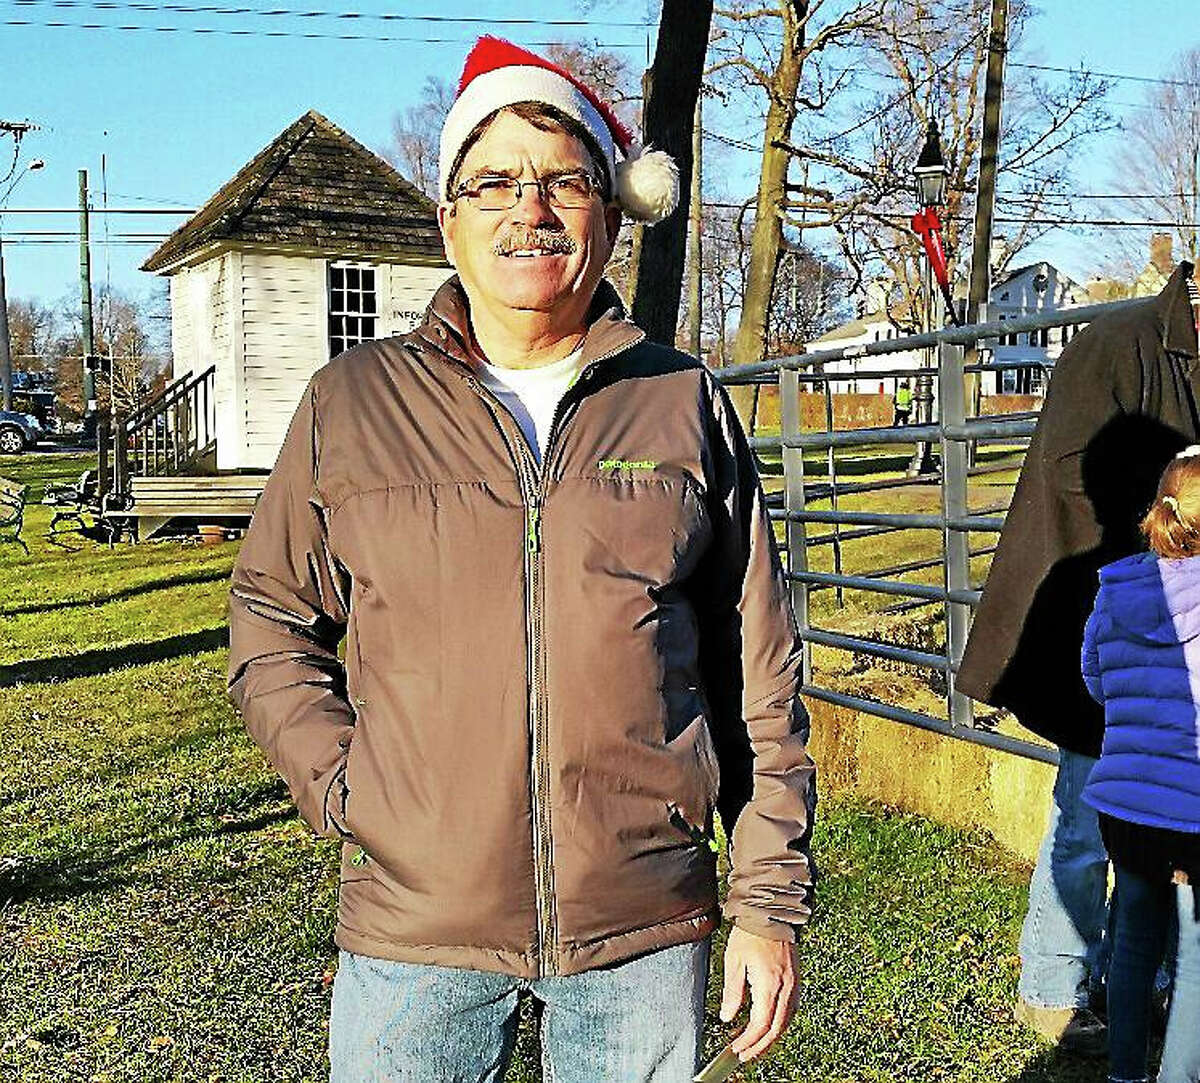 N.F. Ambery Litchfield Parks & Recreation Director Brent Hawkins oversaw the activities of the Litchfield Holiday Stroll & Tree Lighting.